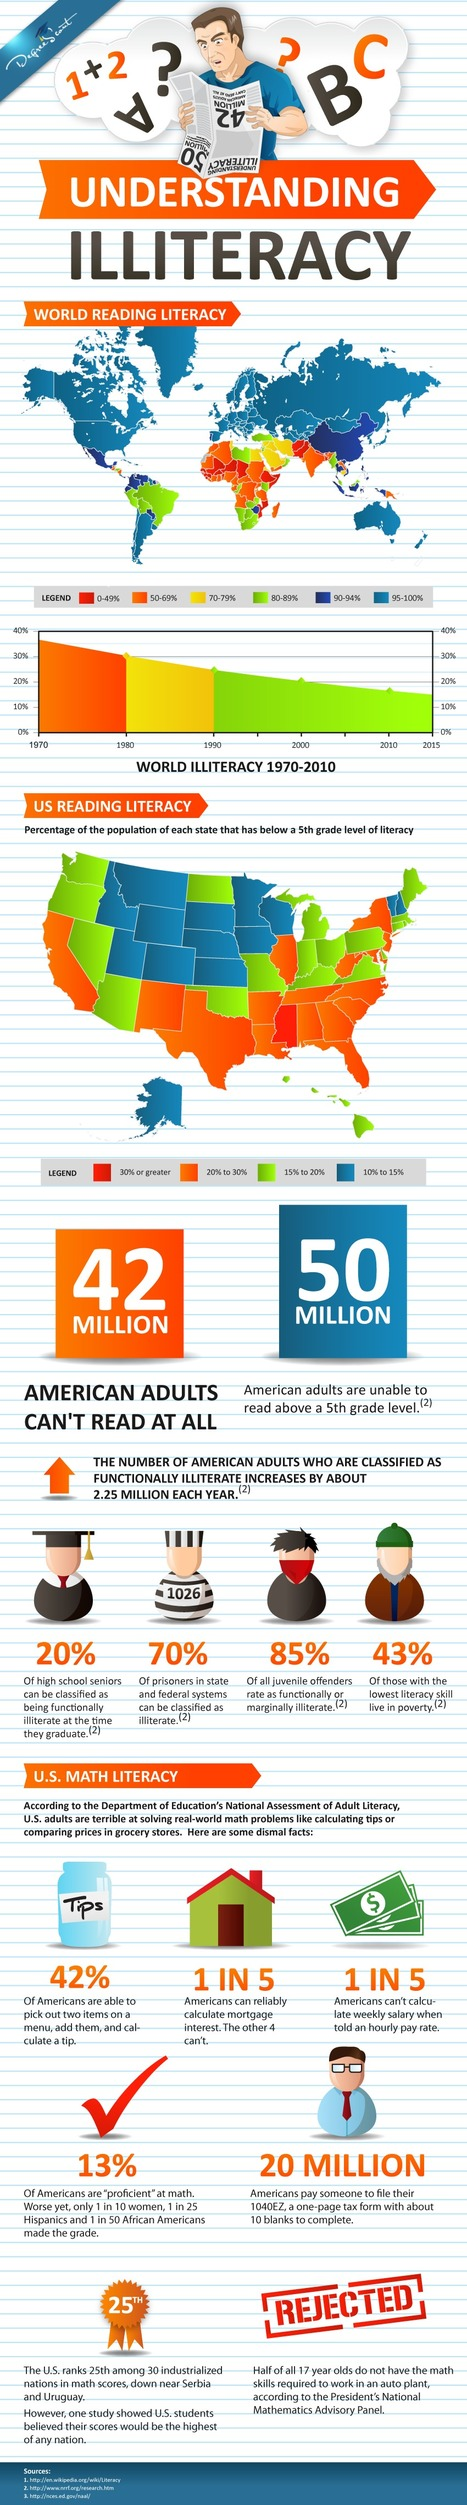 Understanding Illiteracy - Infographic | Studying Teaching and Learning | Scoop.it